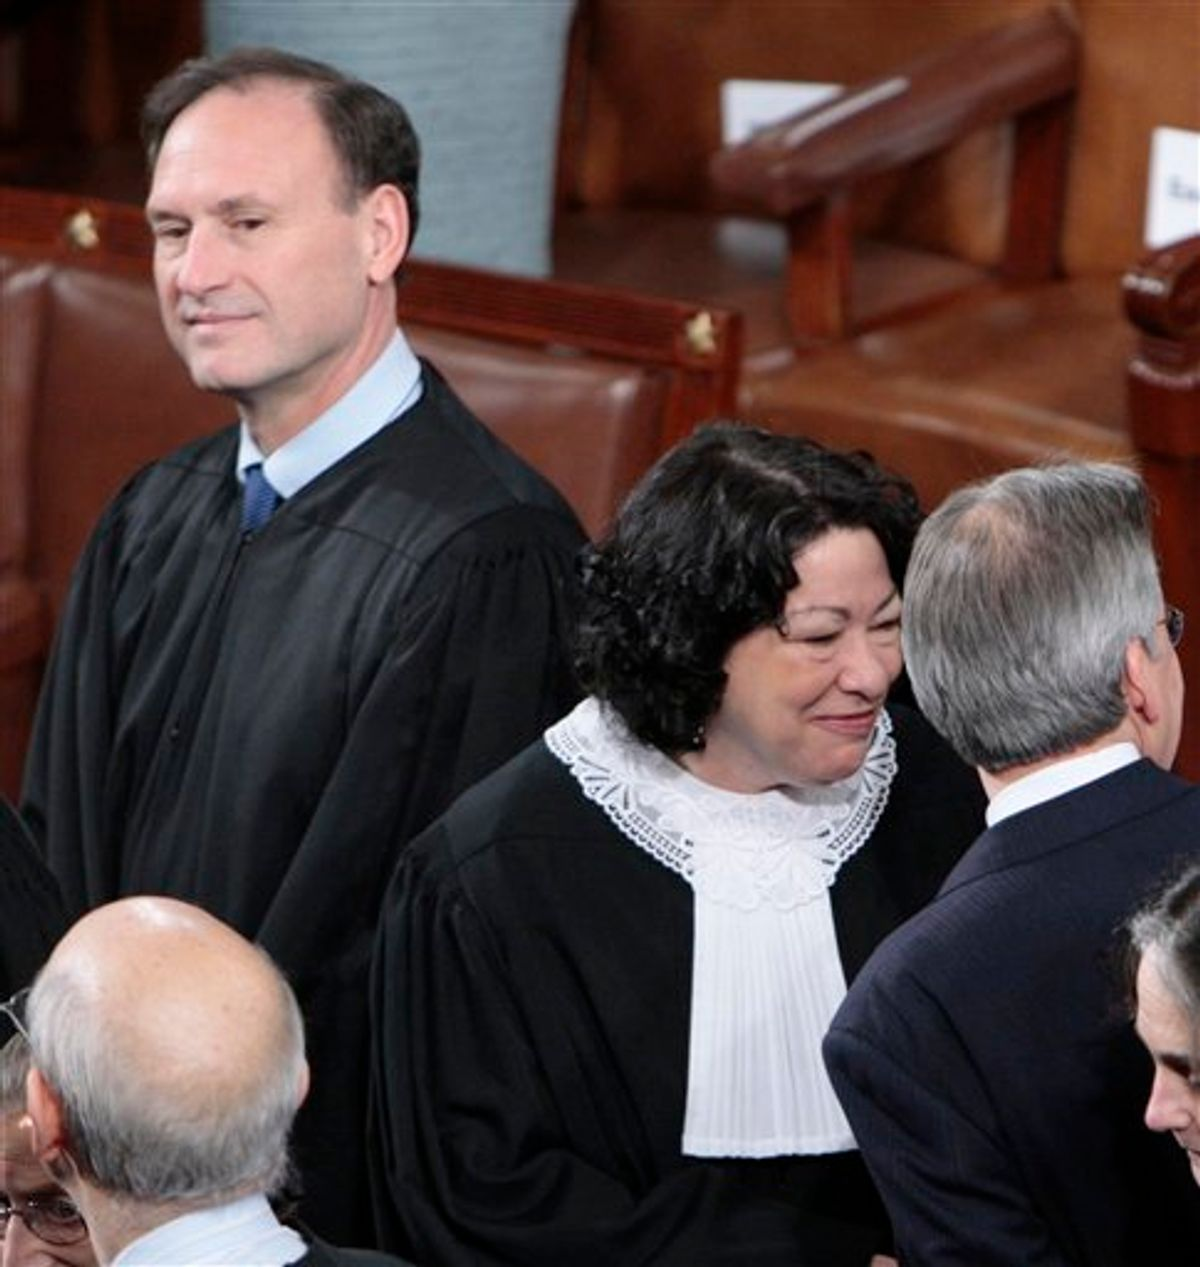 Supreme Court Justice Samuel Alito, left, and Sonia Sotomayor, center, are seen on Capitol Hill in Washington, Wednesday, Jan. 27, 2010, prior to President Barack Obama's State of the Union address . (AP Photo/Pablo Martinez Monsivais)  (AP)